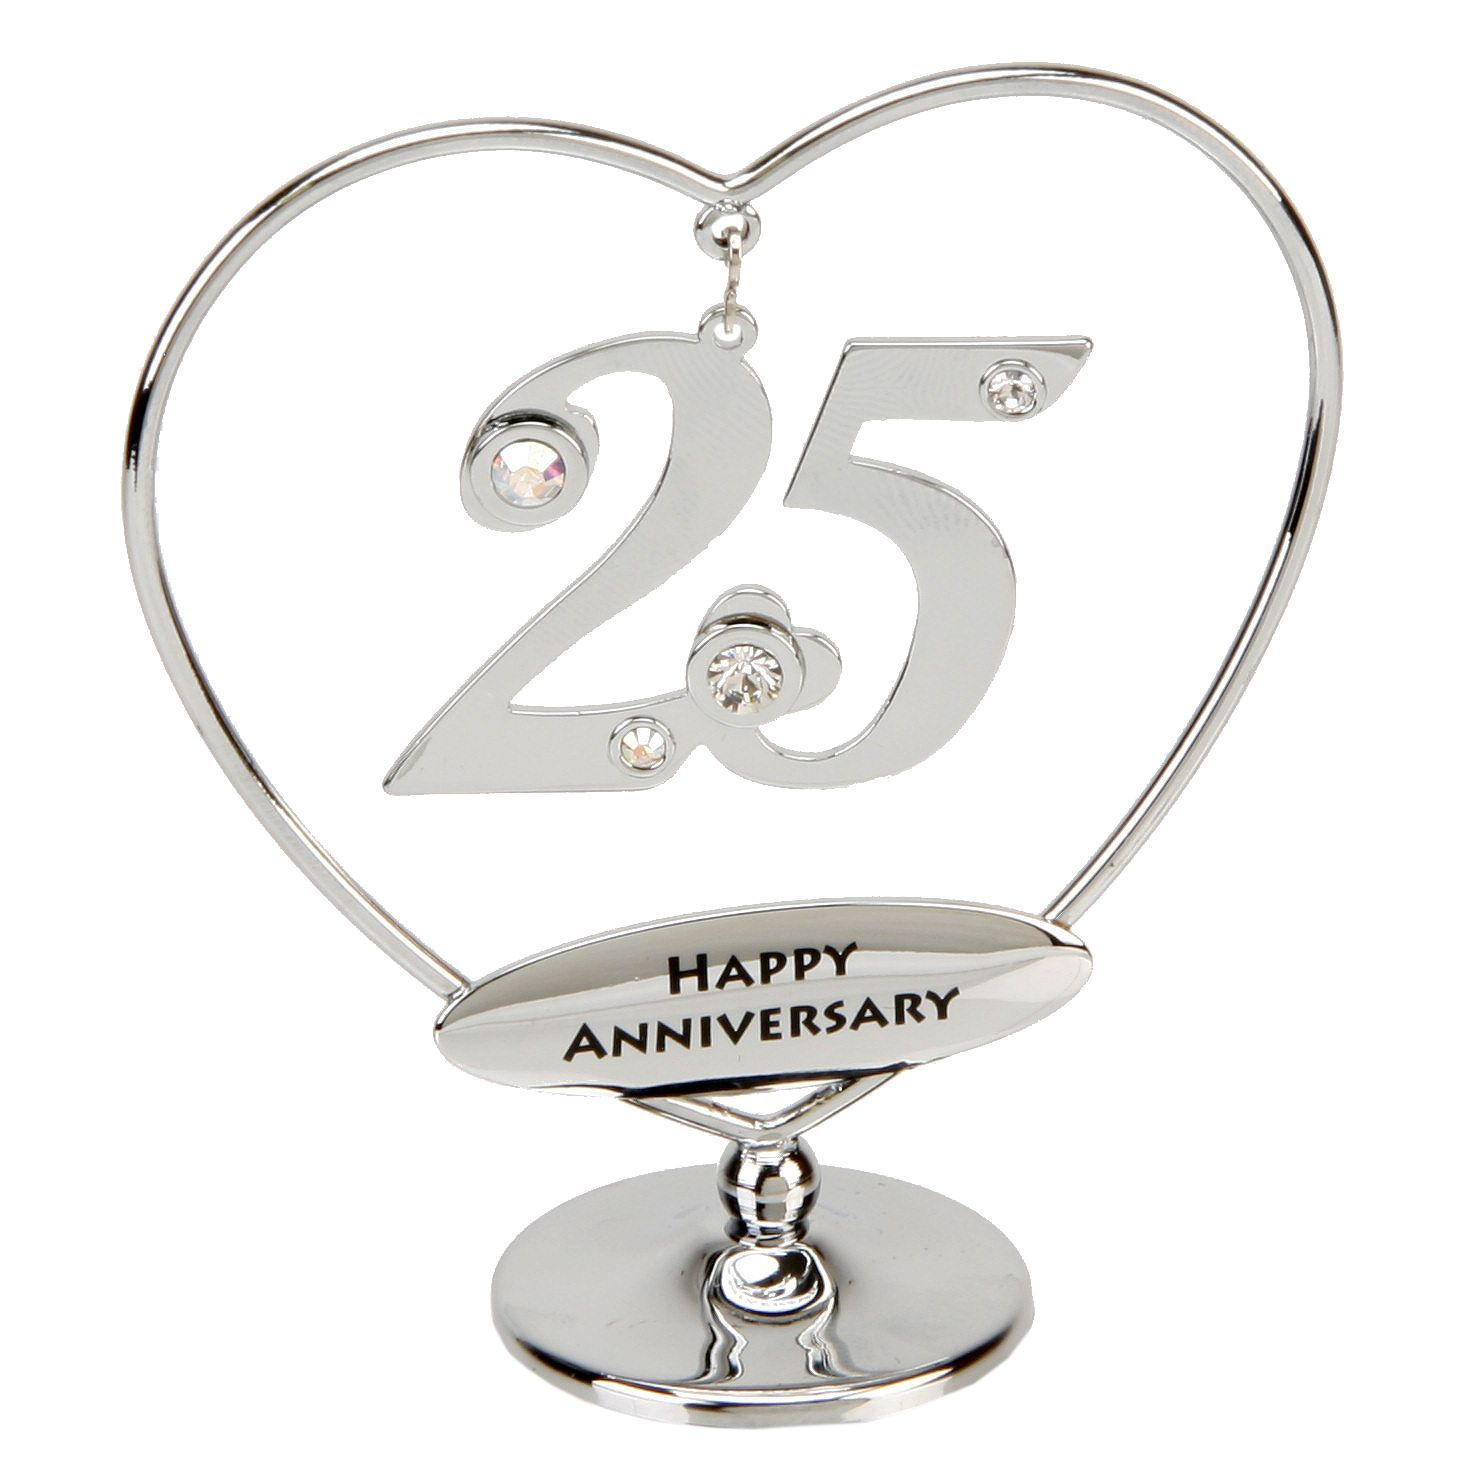 Ideas For 25th Wedding Anniversary Gift: 25th Anniversary Cake Topper